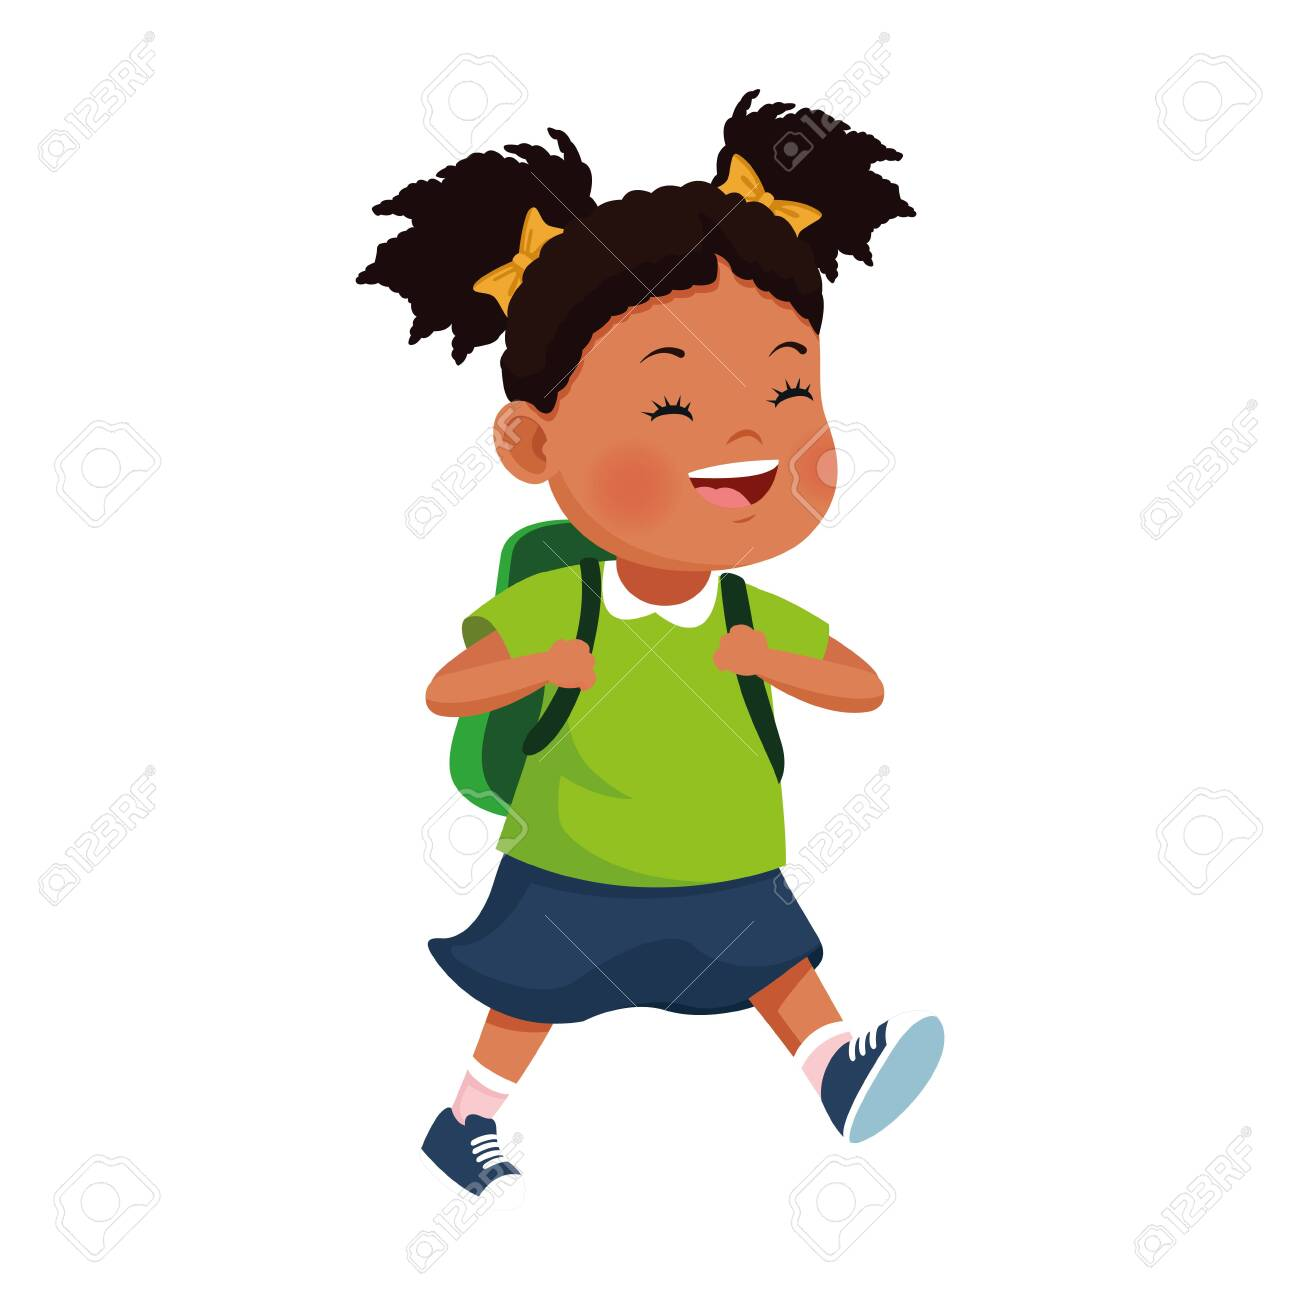 cartoon girl smiling with a backpack icon over white background, vector illustration - 142713432